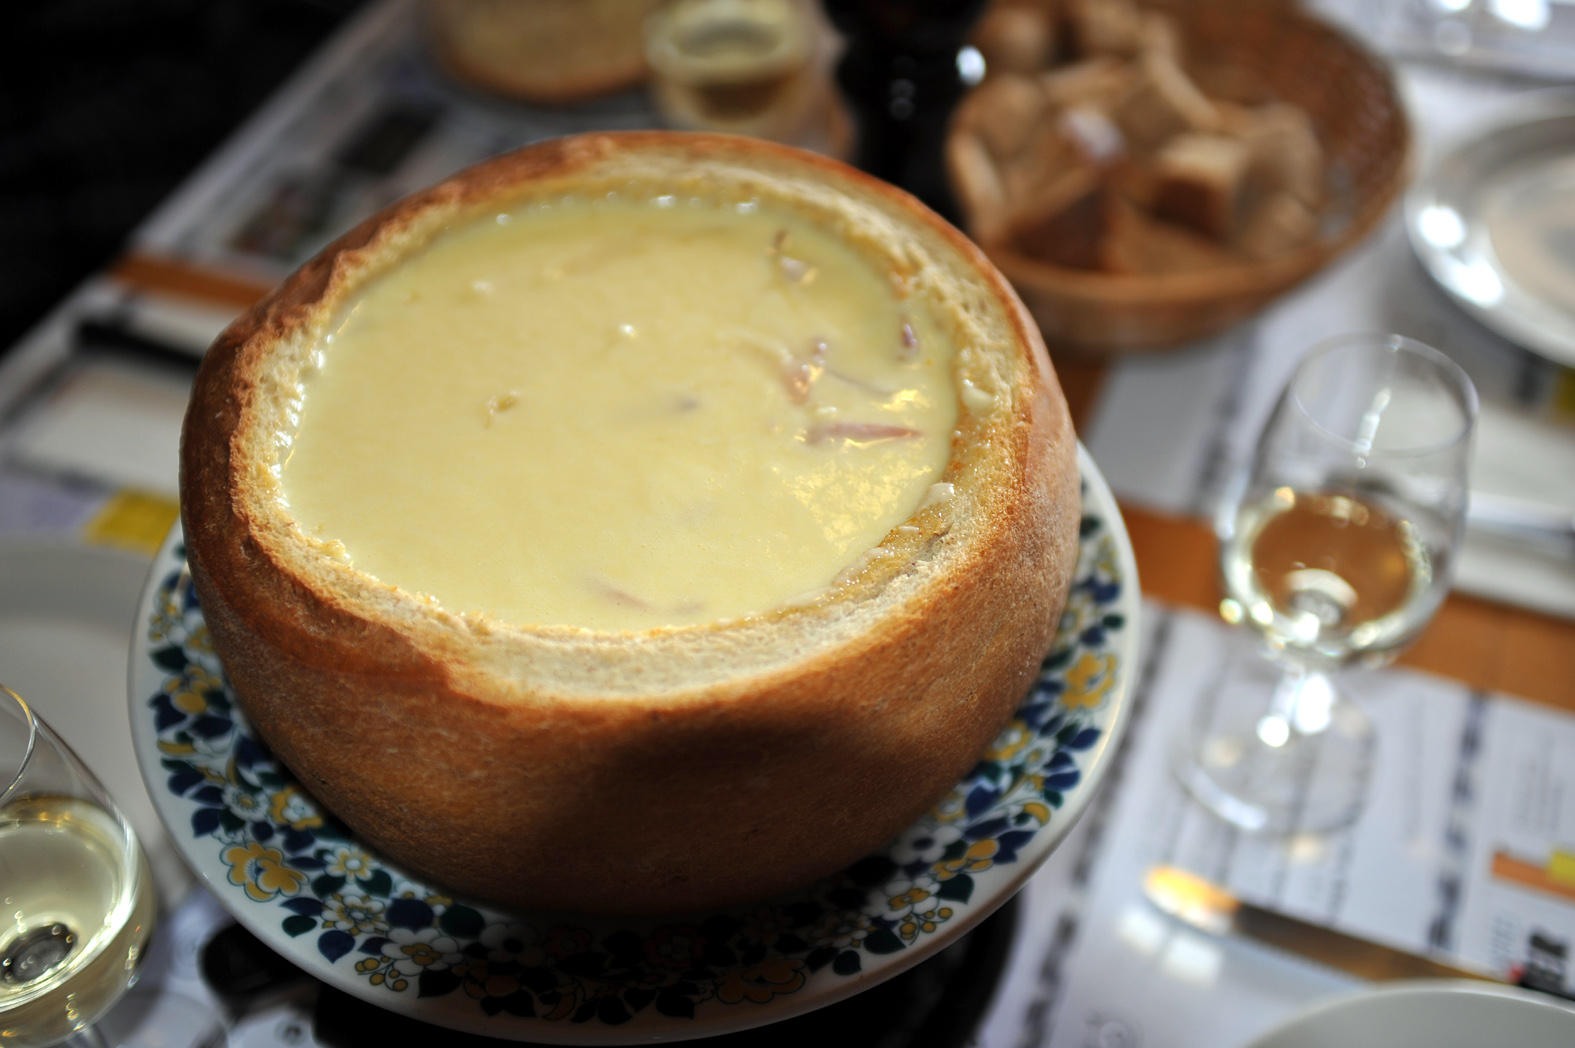 Description Cheese fondue in bread 04 12.jpg